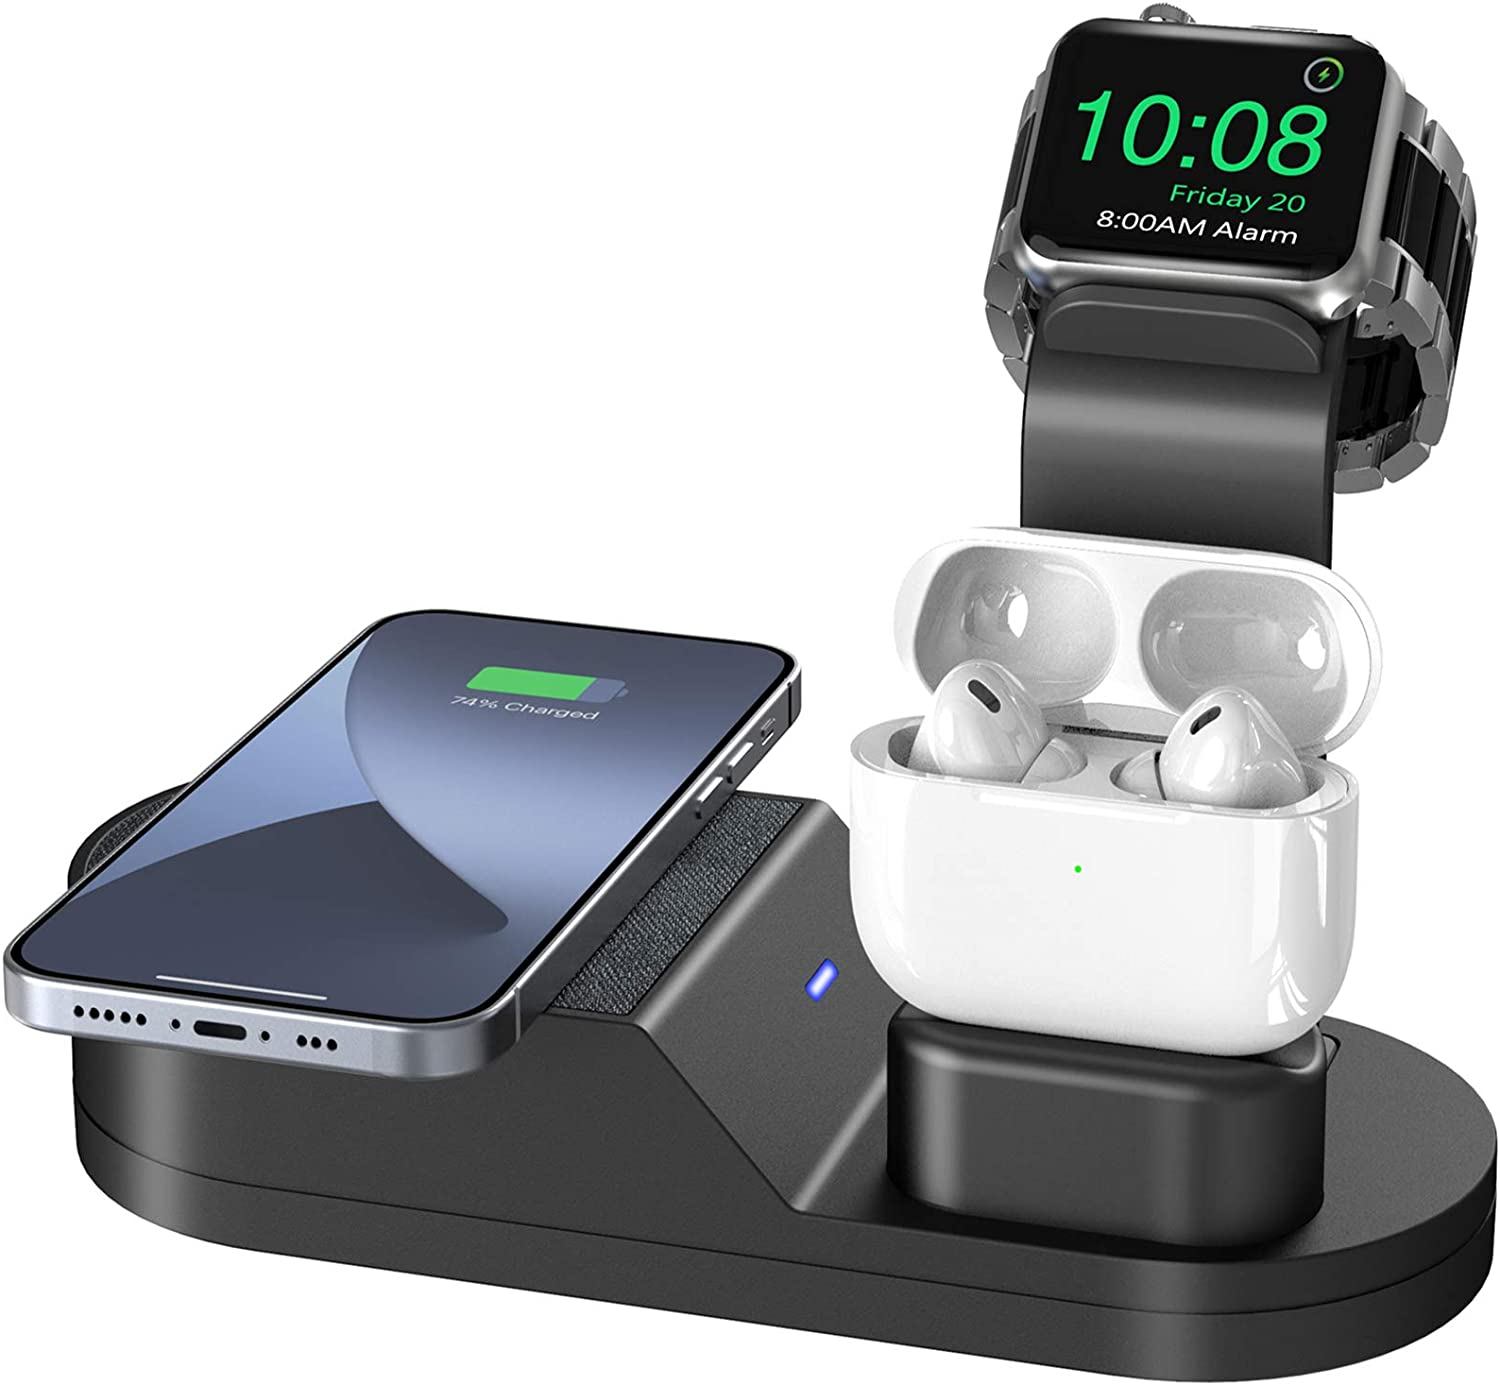 Deszon Wireless Charging Station Compatible with iWatch Stand iWatch Series SE 6 5 4 3 2 1, AirPods Pro 2 1 and Phone Series 12 SE 11 11 pro 11 Pro Max Xs X Max XR X 8 8P (No Adapter)